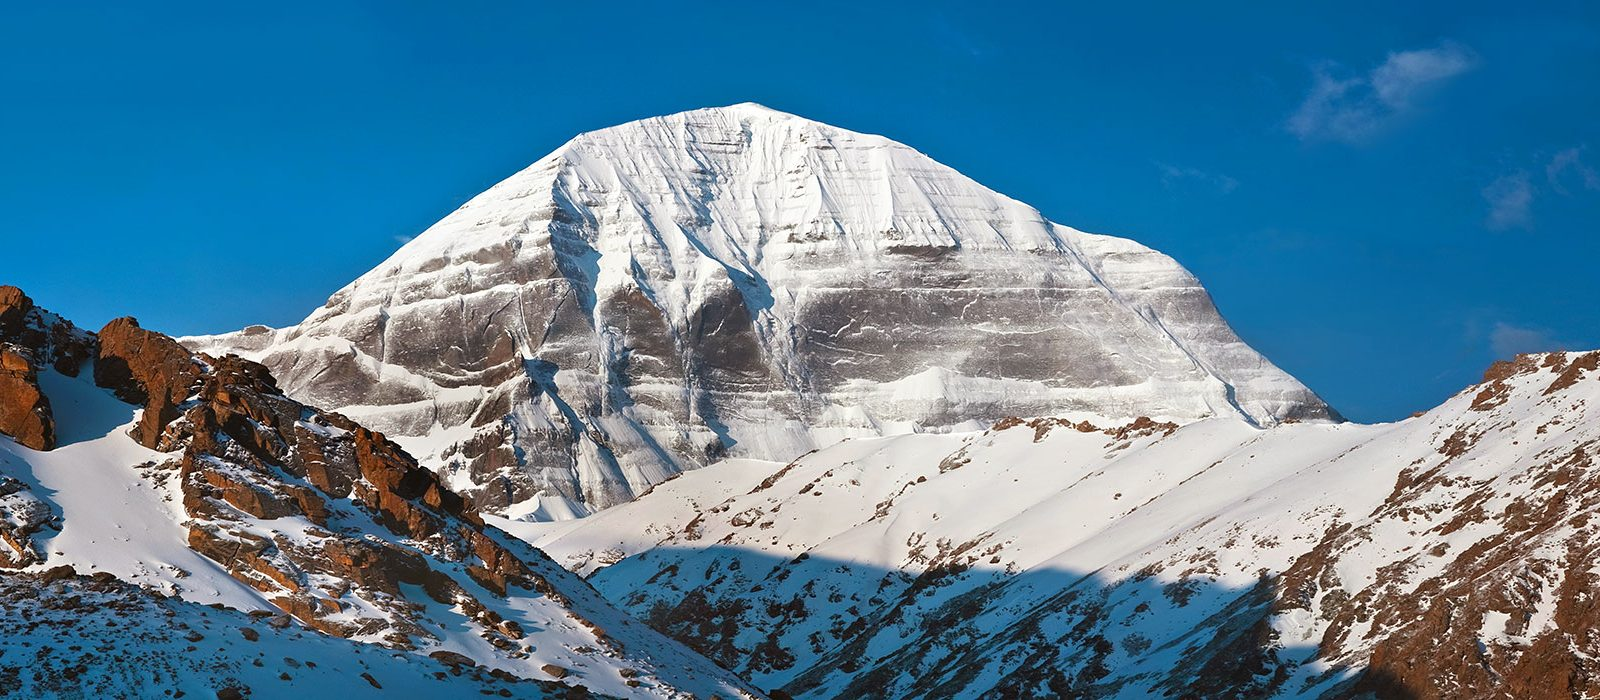 Mount Kailash in Tibet